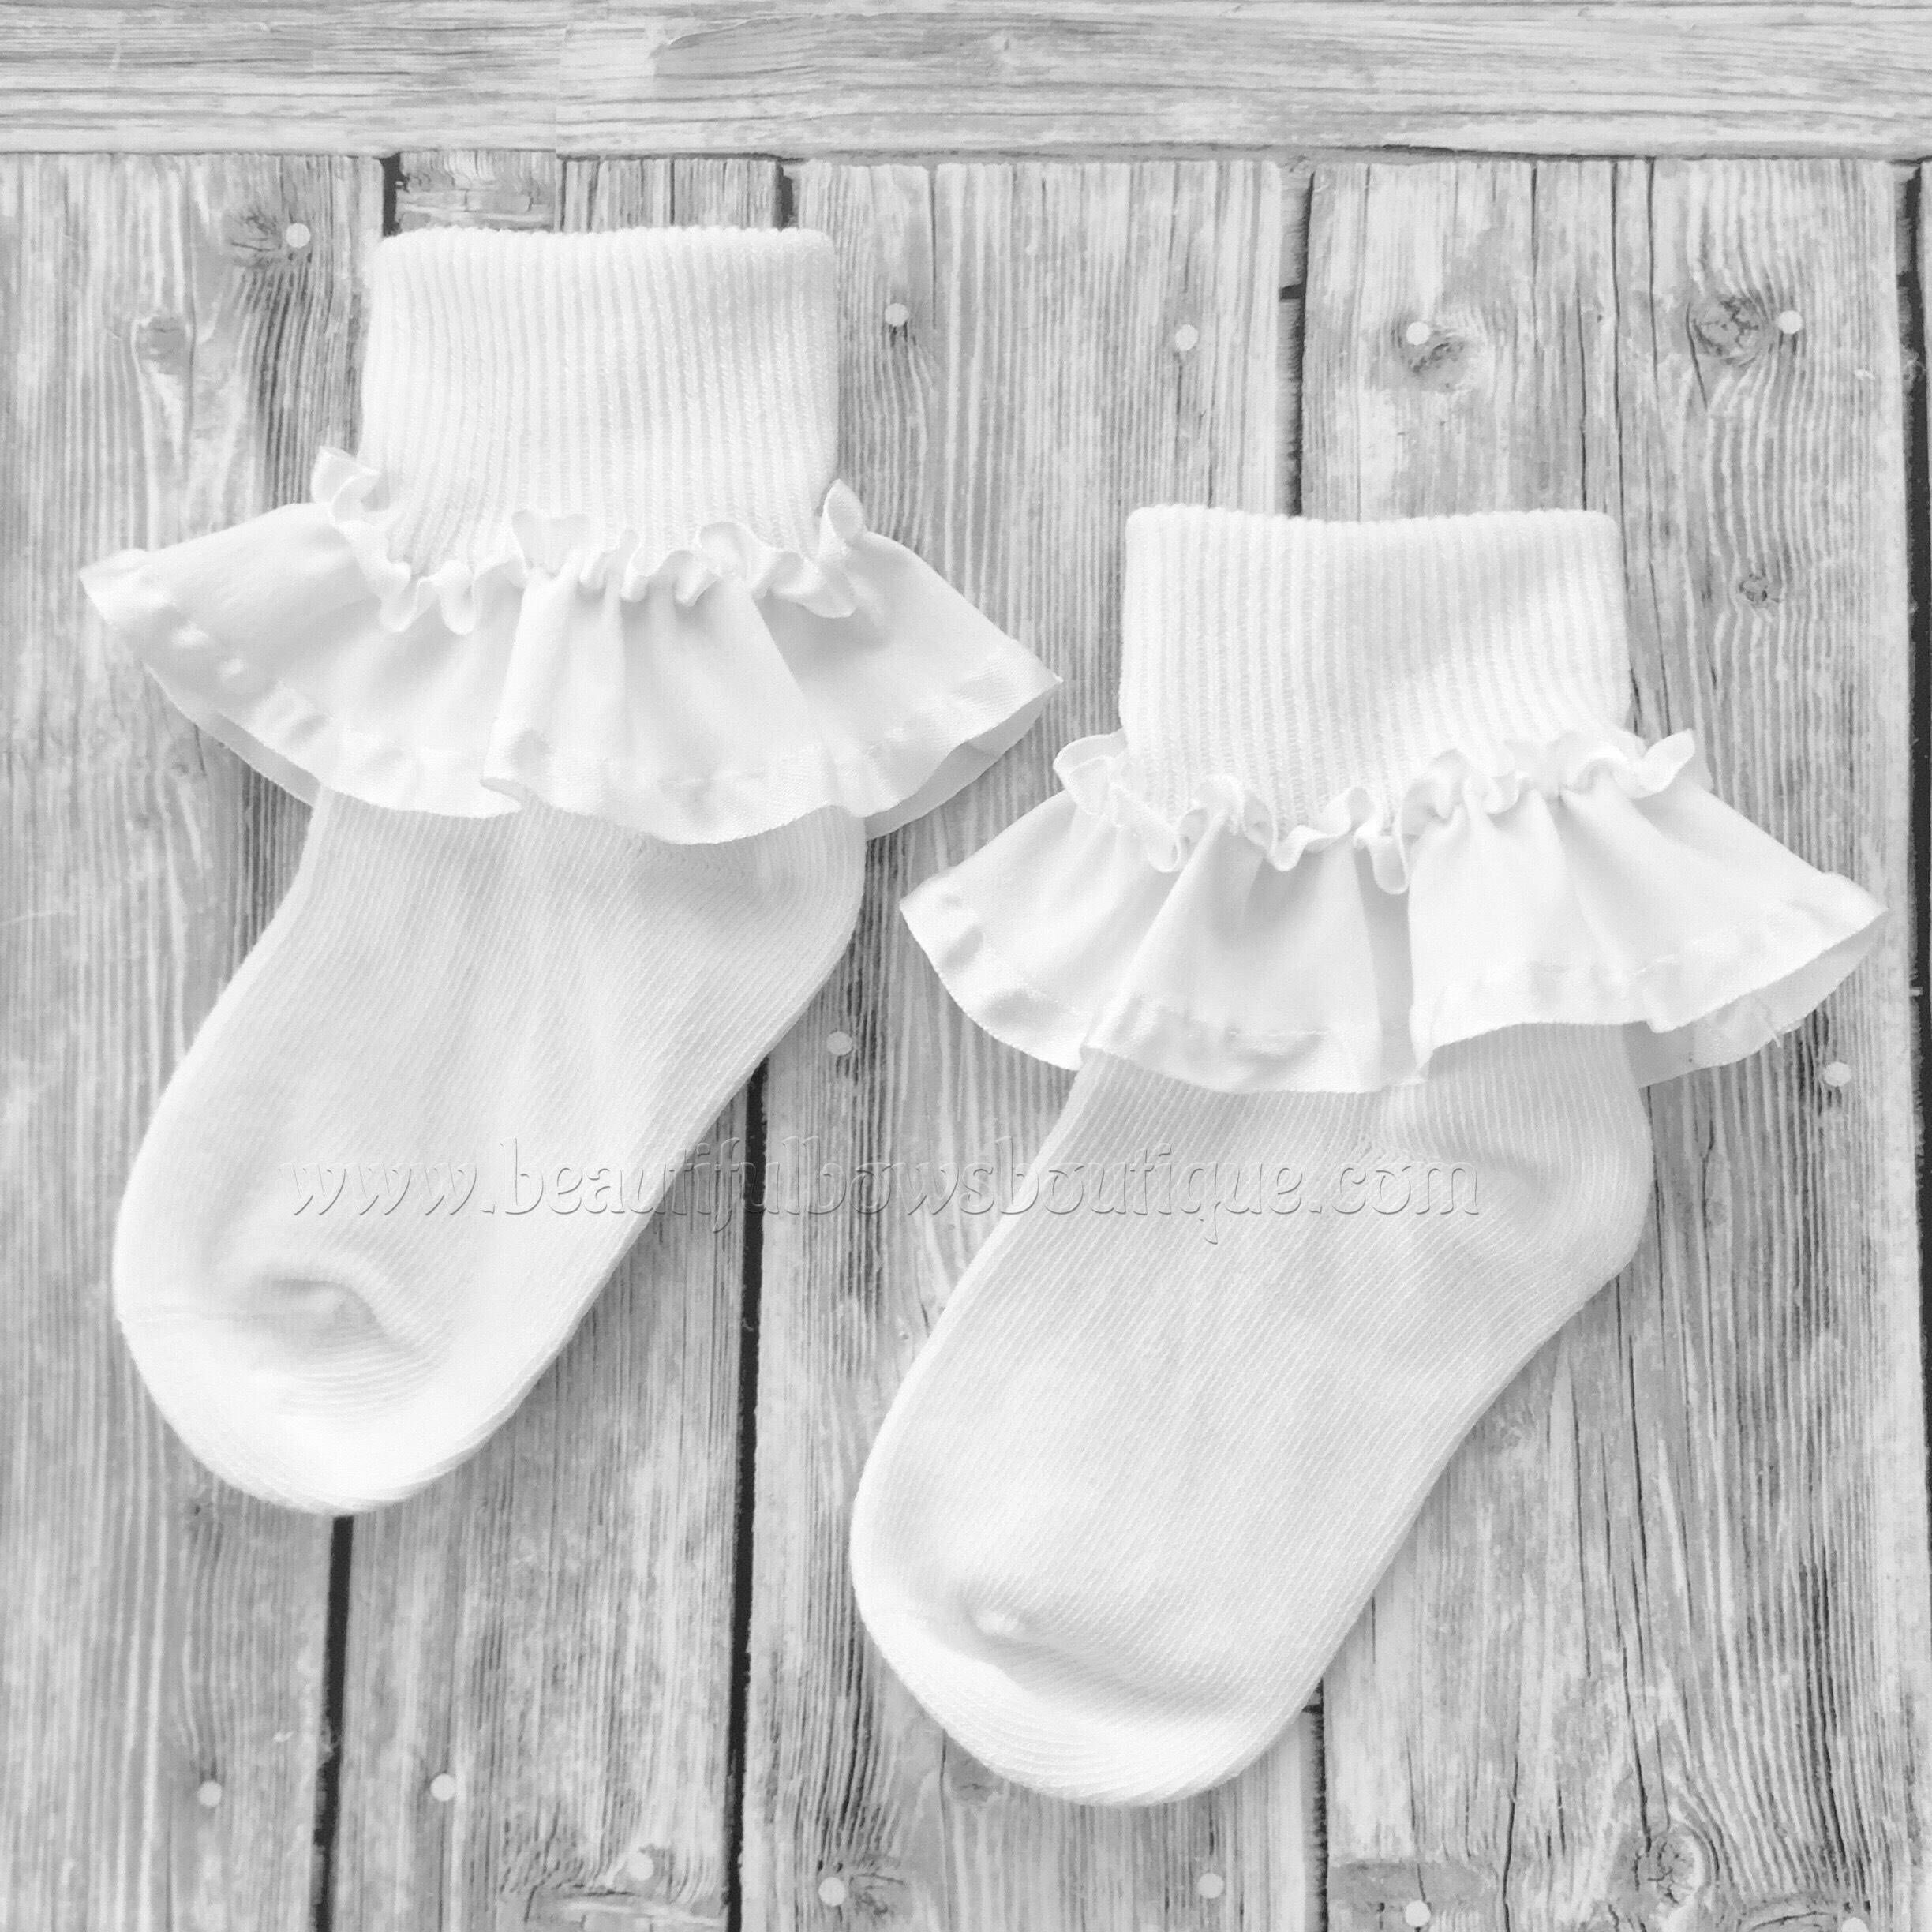 White Baby Socksribbon Ruffle Sockslittle Girl White Ruffle Etsy Baby Girl Socks Baby Socks Baby Headbands Crochet